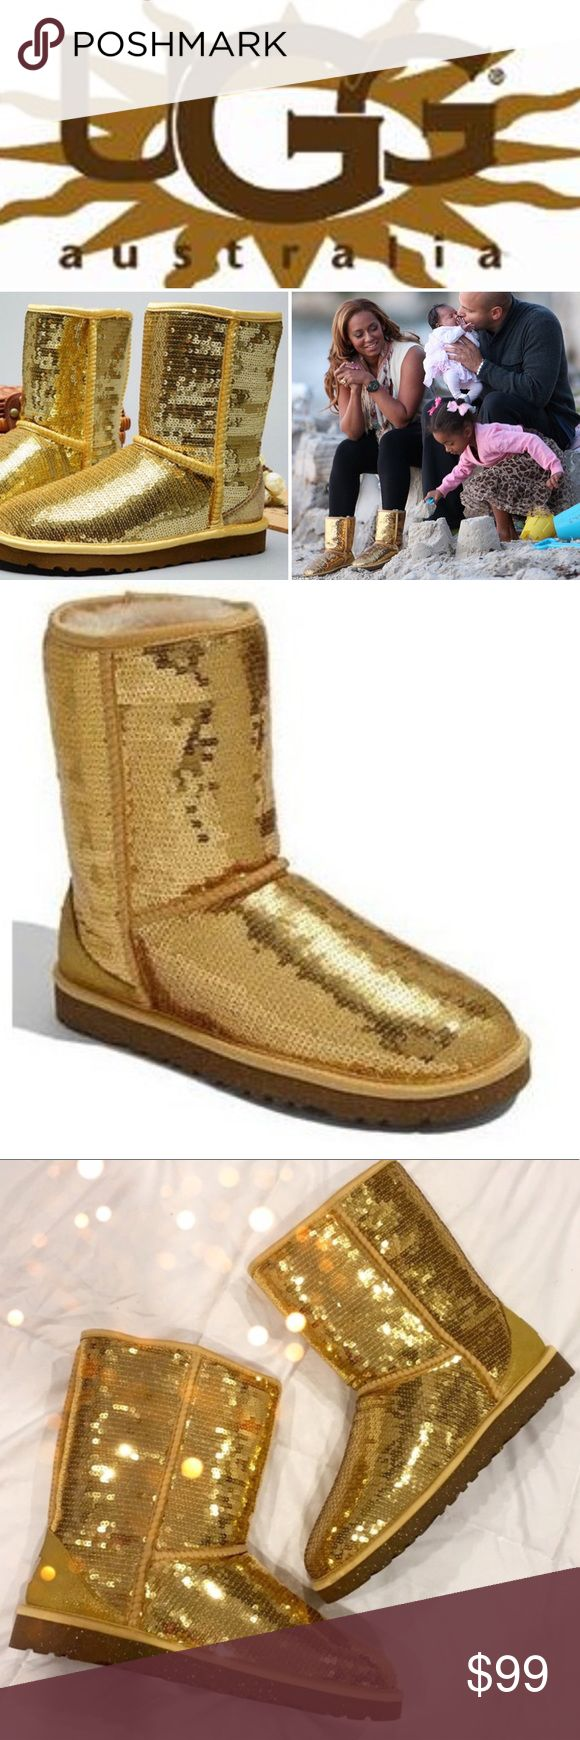 🔆 CLASSIC SHORT UGGS GOLD SEQUIN 🔆 RARE 🔆 Hate to part with these little gems 💎 Gorgeous Classic Short Uggs in gold sequins! RARE! Head-turners FOR SURE! They are pre loved and very good condition. Only worn a couple of times and never in wet weather. Includes the UGG leather conditioner that came with them. Comes from a smoke free home 🏡 Bundle & save! UGG Shoes Winter & Rain Boots